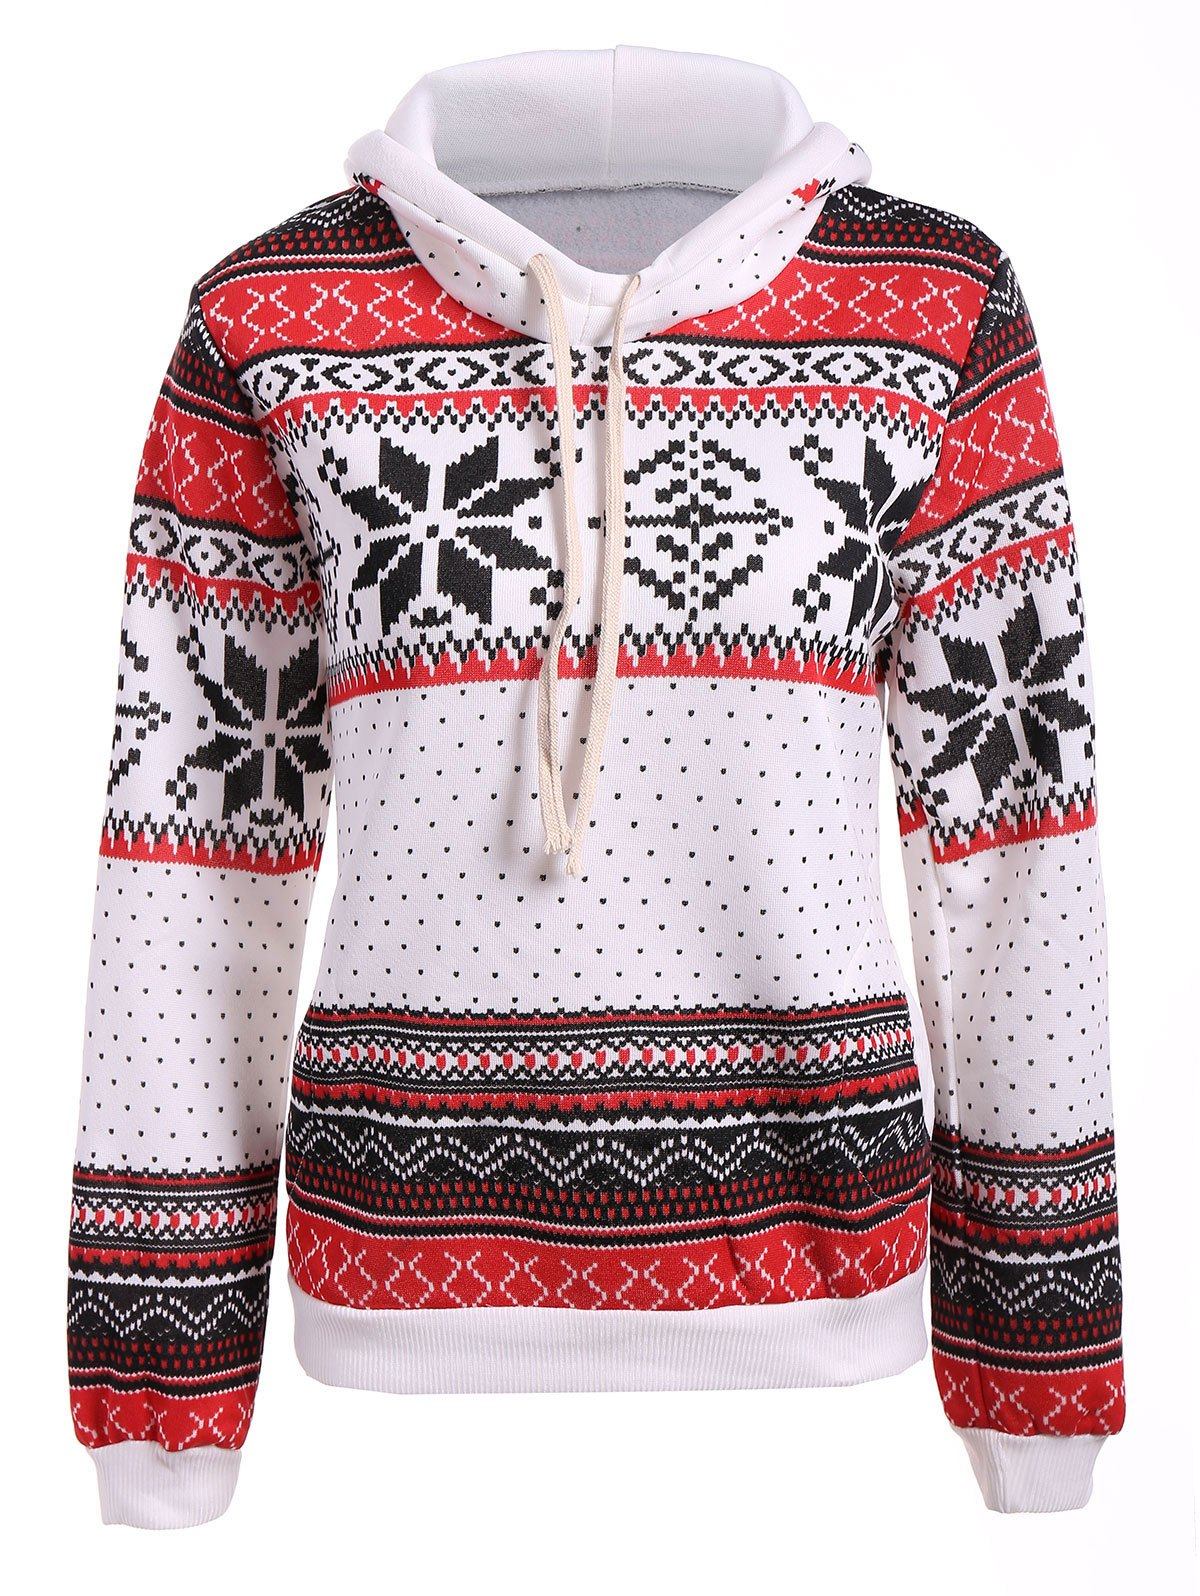 Polka Dot Christmas Snowflake Pullover HoodieWOMEN<br><br>Size: XL; Color: RED AND WHITE; Material: Polyester; Shirt Length: Regular; Sleeve Length: Full; Style: Casual; Pattern Style: Polka Dot; Season: Fall,Spring; Weight: 0.350kg; Package Contents: 1 x Hoodie;